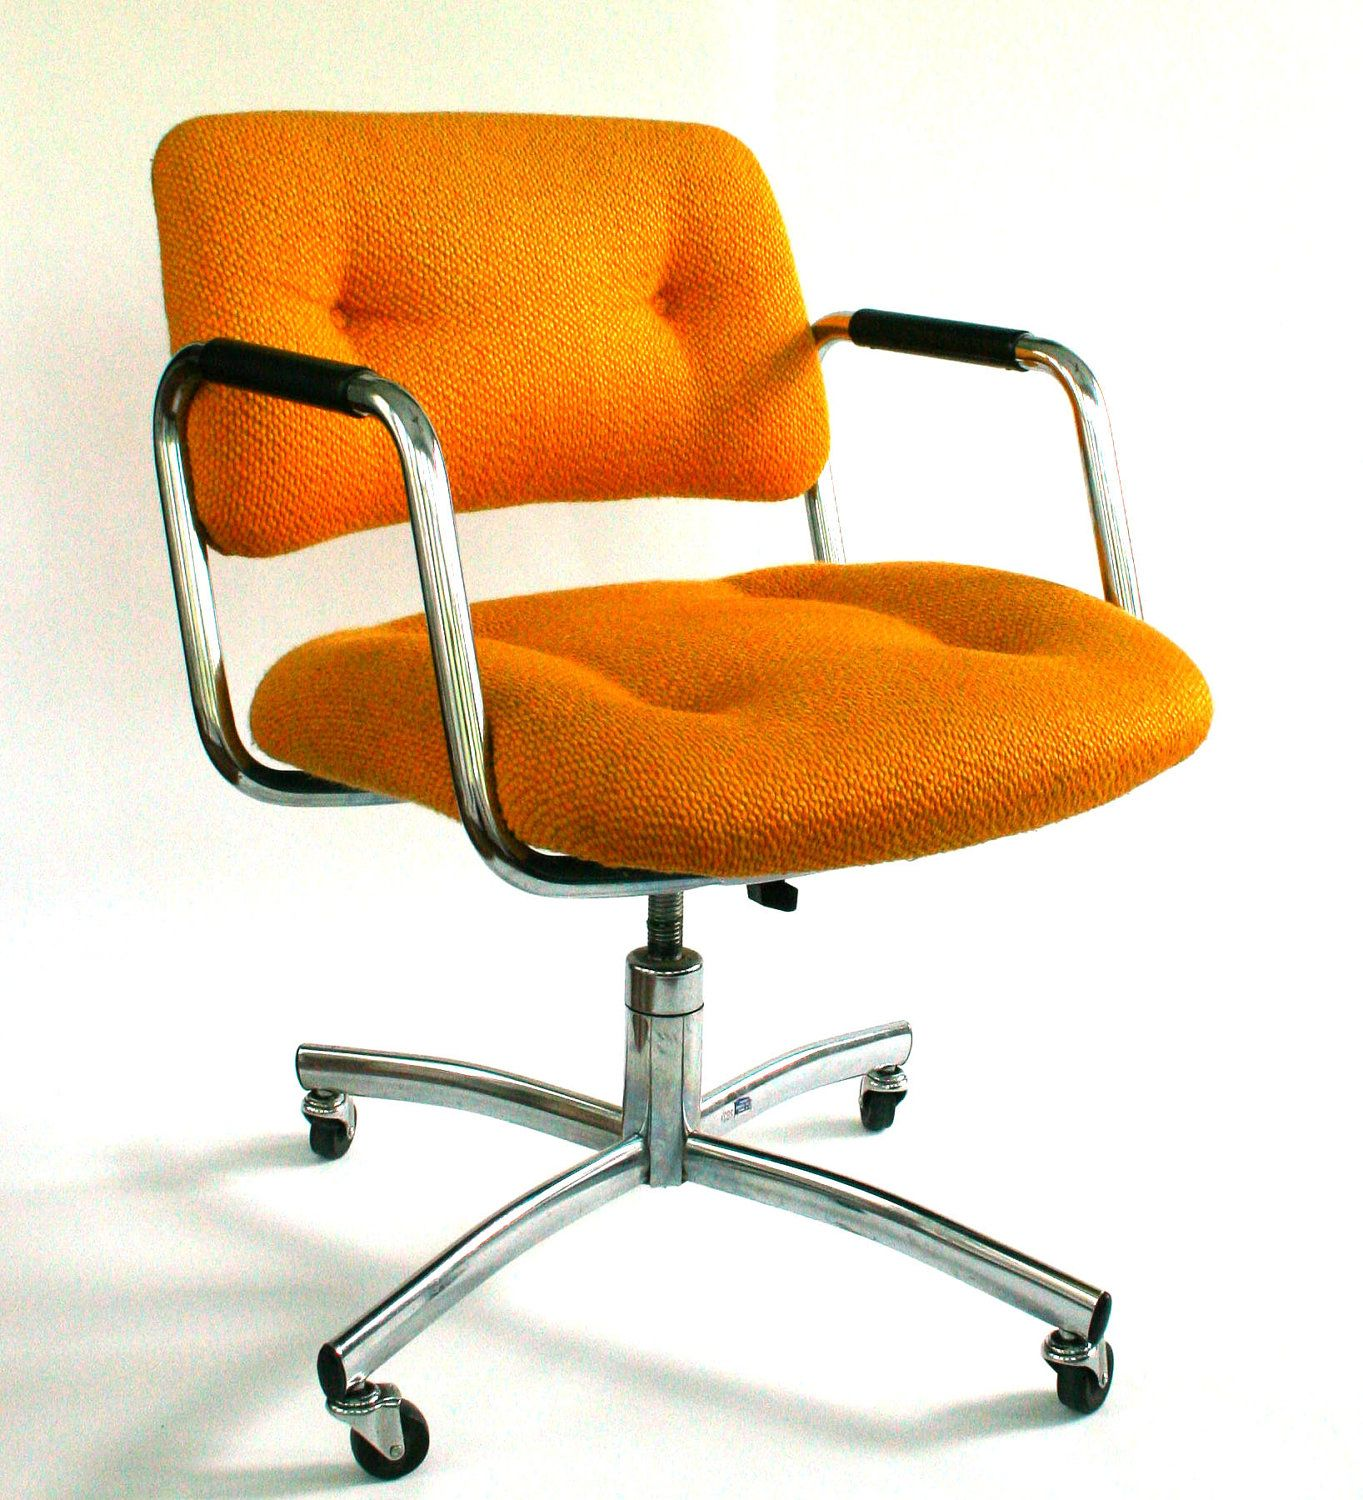 Vintage Office Desk Chair Mid Century Upholstered Mustard Yellow Fire Gold Button Tufted Industrial Retro Mod Casters Wheels Retro Office Chair Orange Office Chairs Office Chair